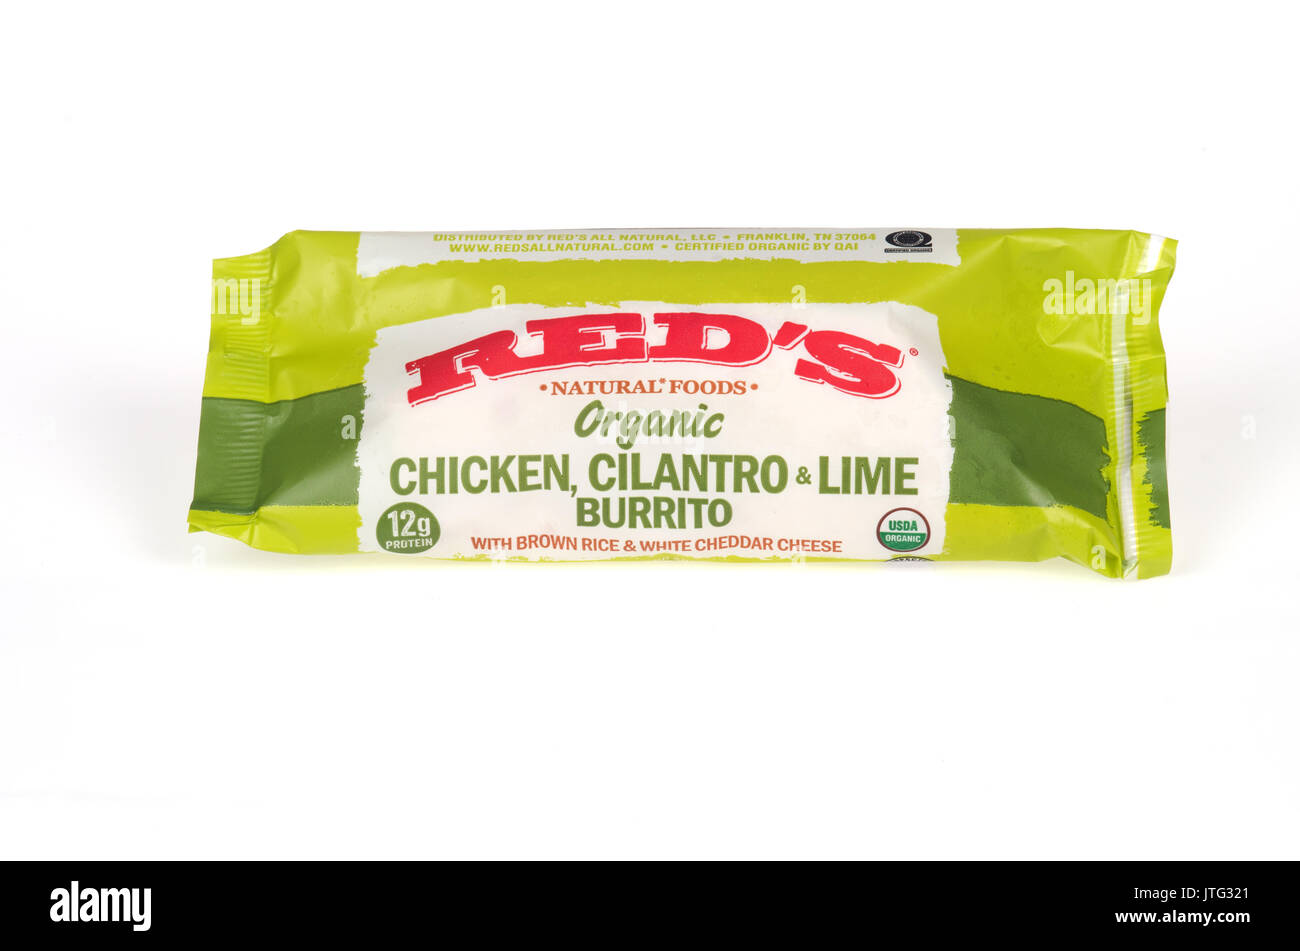 Frozen package wrapper of Red's Chicken, cilantro, lime burrito on white background. USA - Stock Image